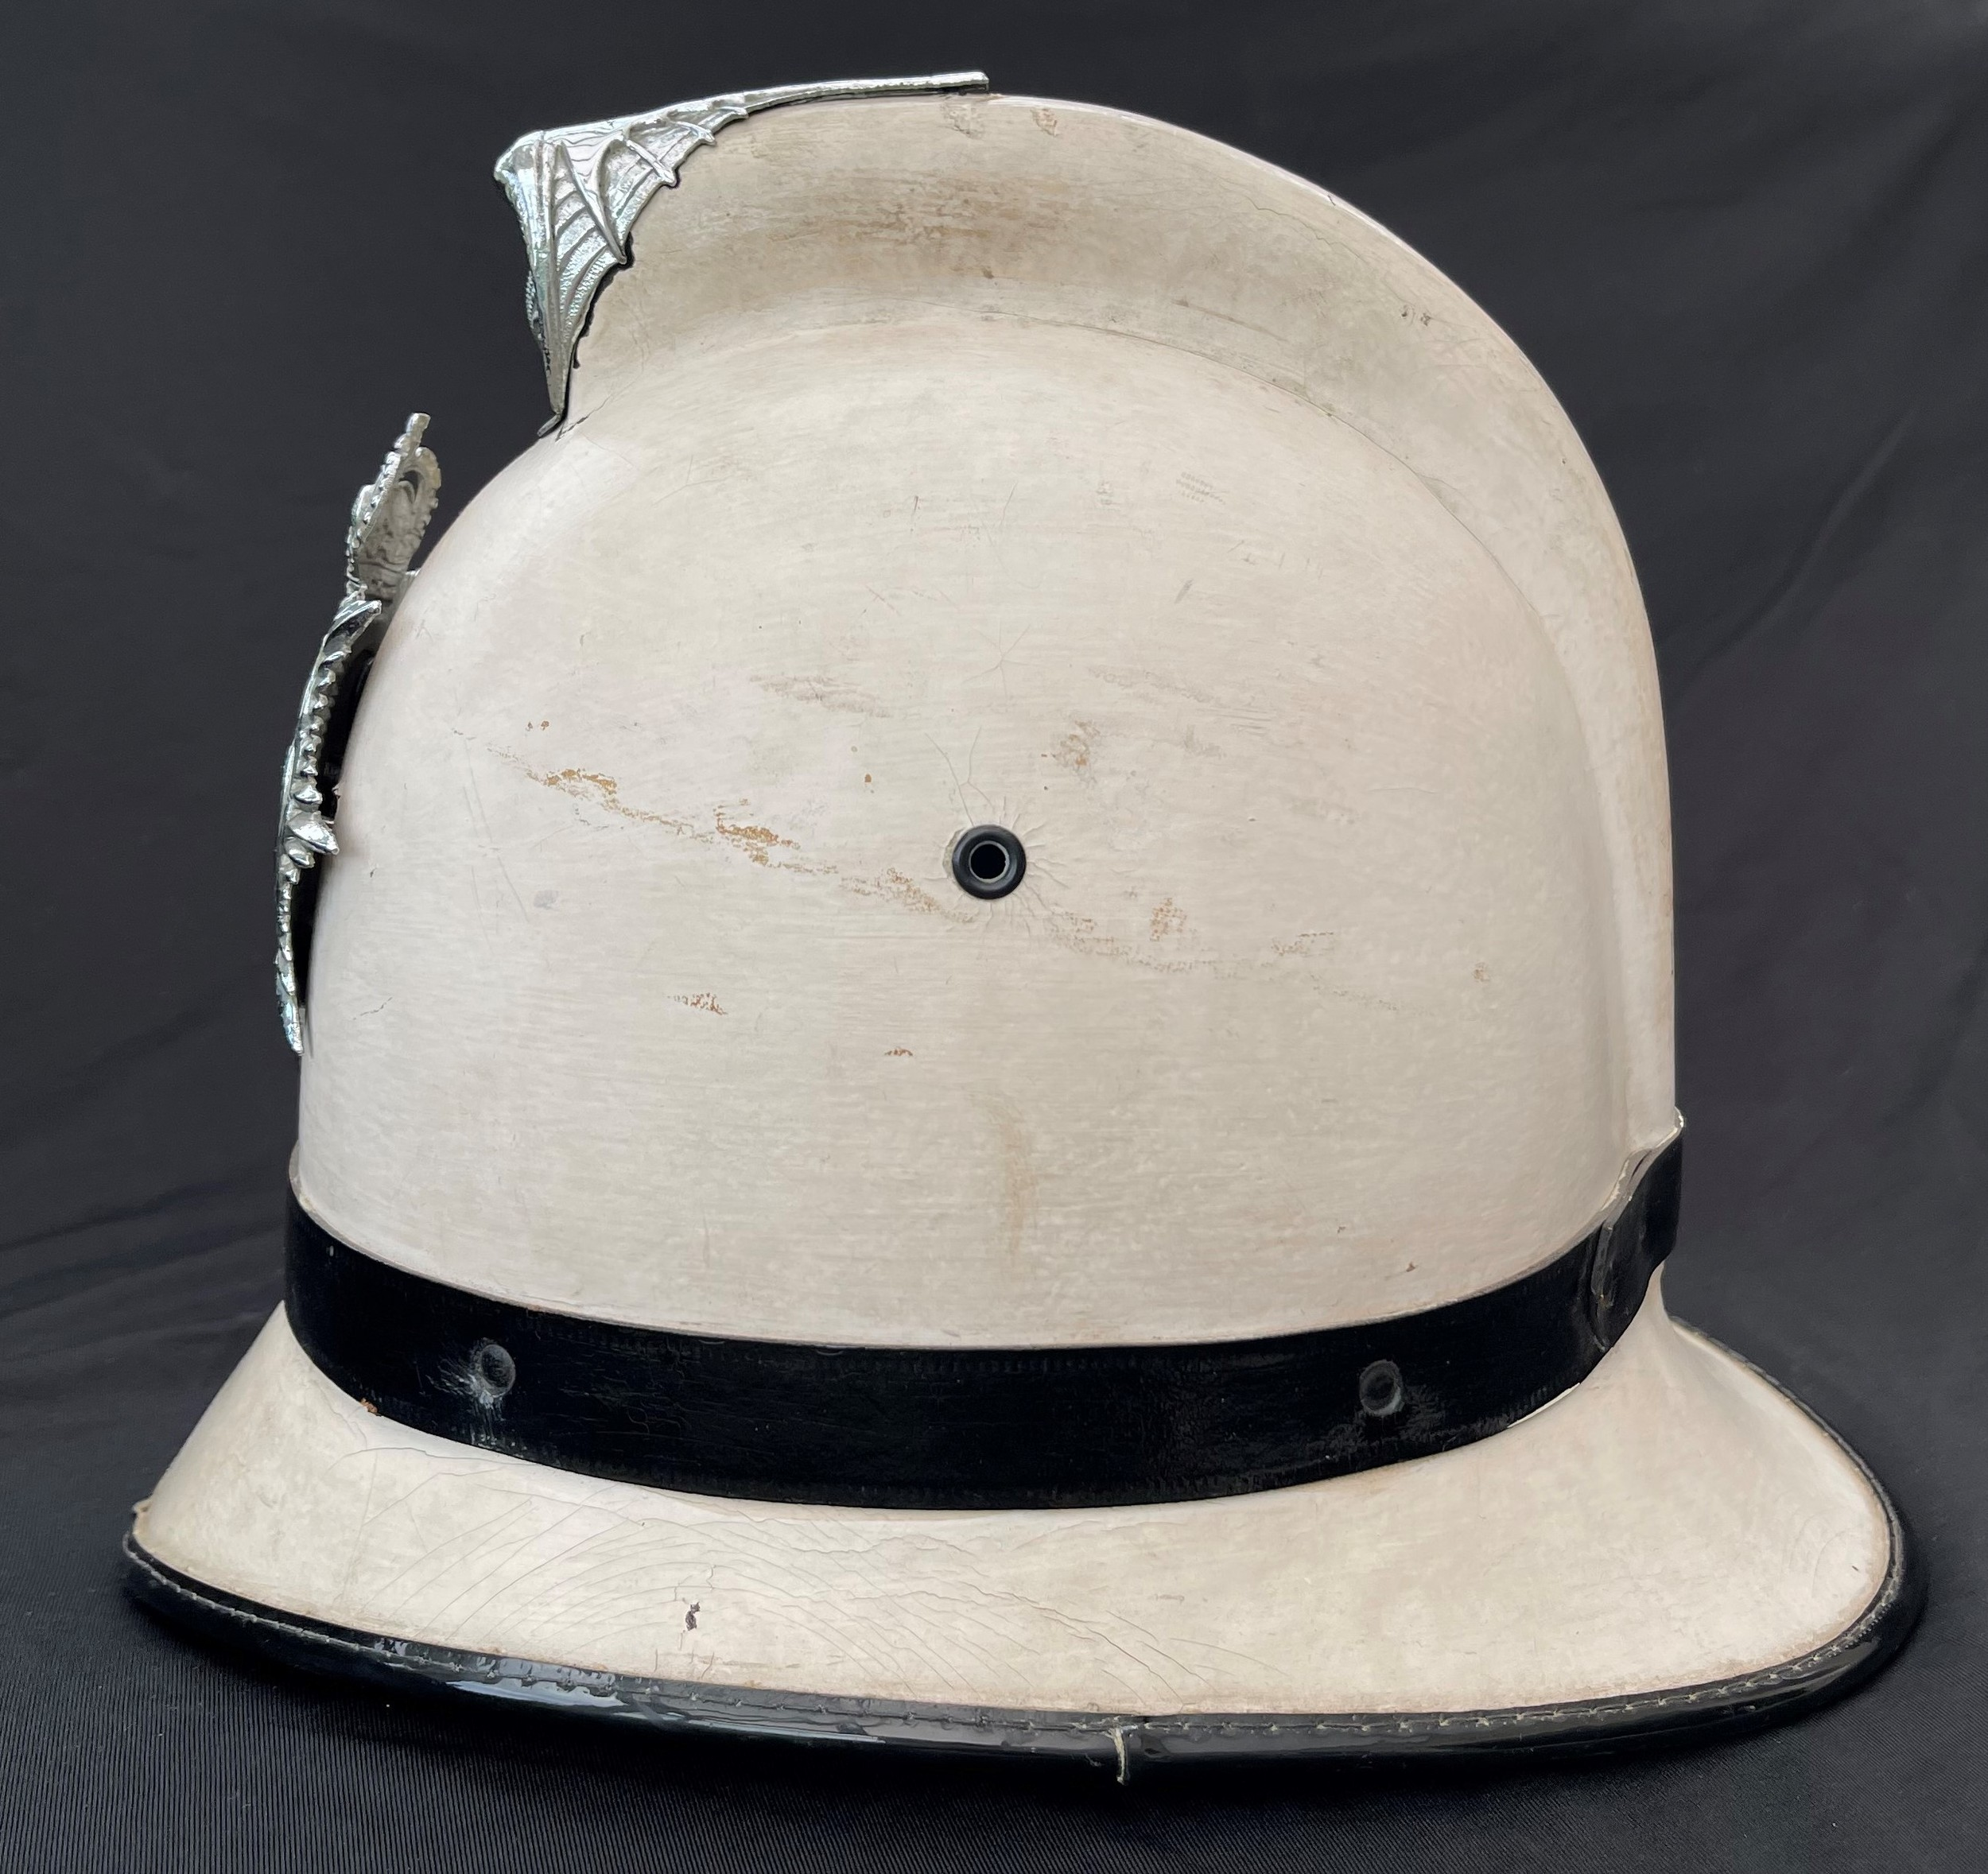 Southend on Sea Constabulary Summer White Police Helmet complete with Queens Crown Helmet Plate. - Image 2 of 6